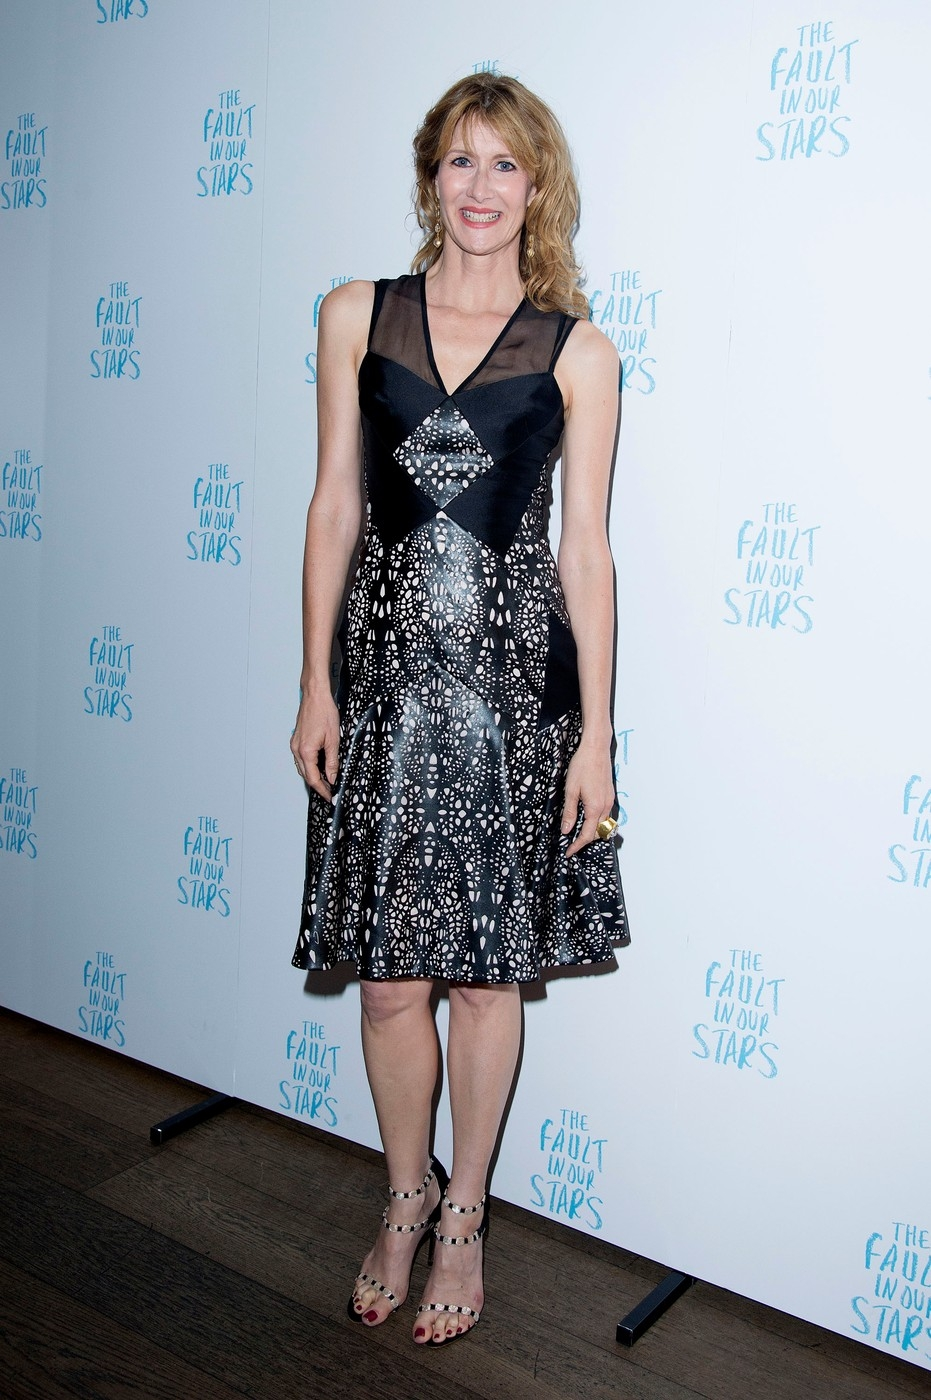 'The Fault in our Stars' Screening